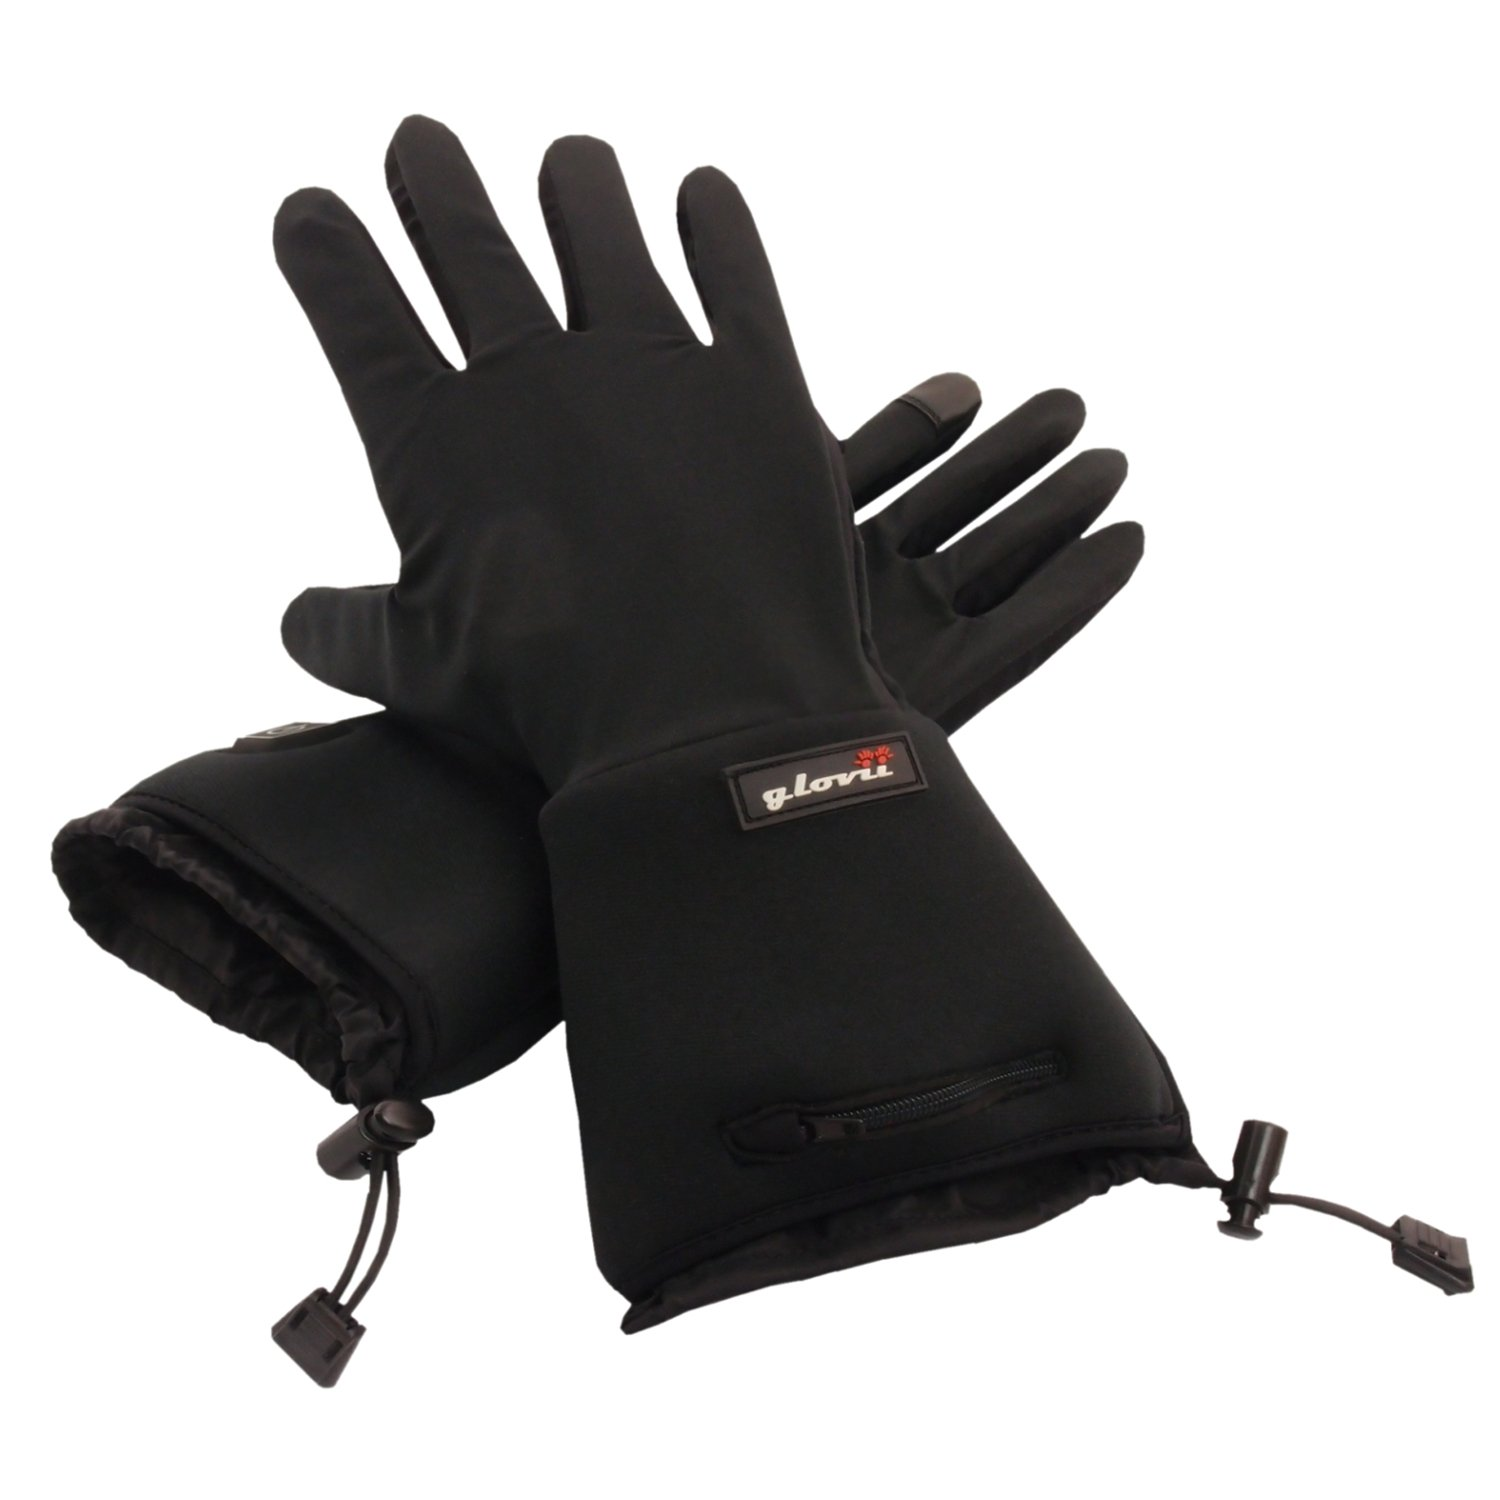 Battery Heated Universal Touchscreen Glove Liners, up to 6 hours of warmth at one recharge - improved 2014 model with free battery extention cable and free storage case - Glovii by Glovii (Image #1)